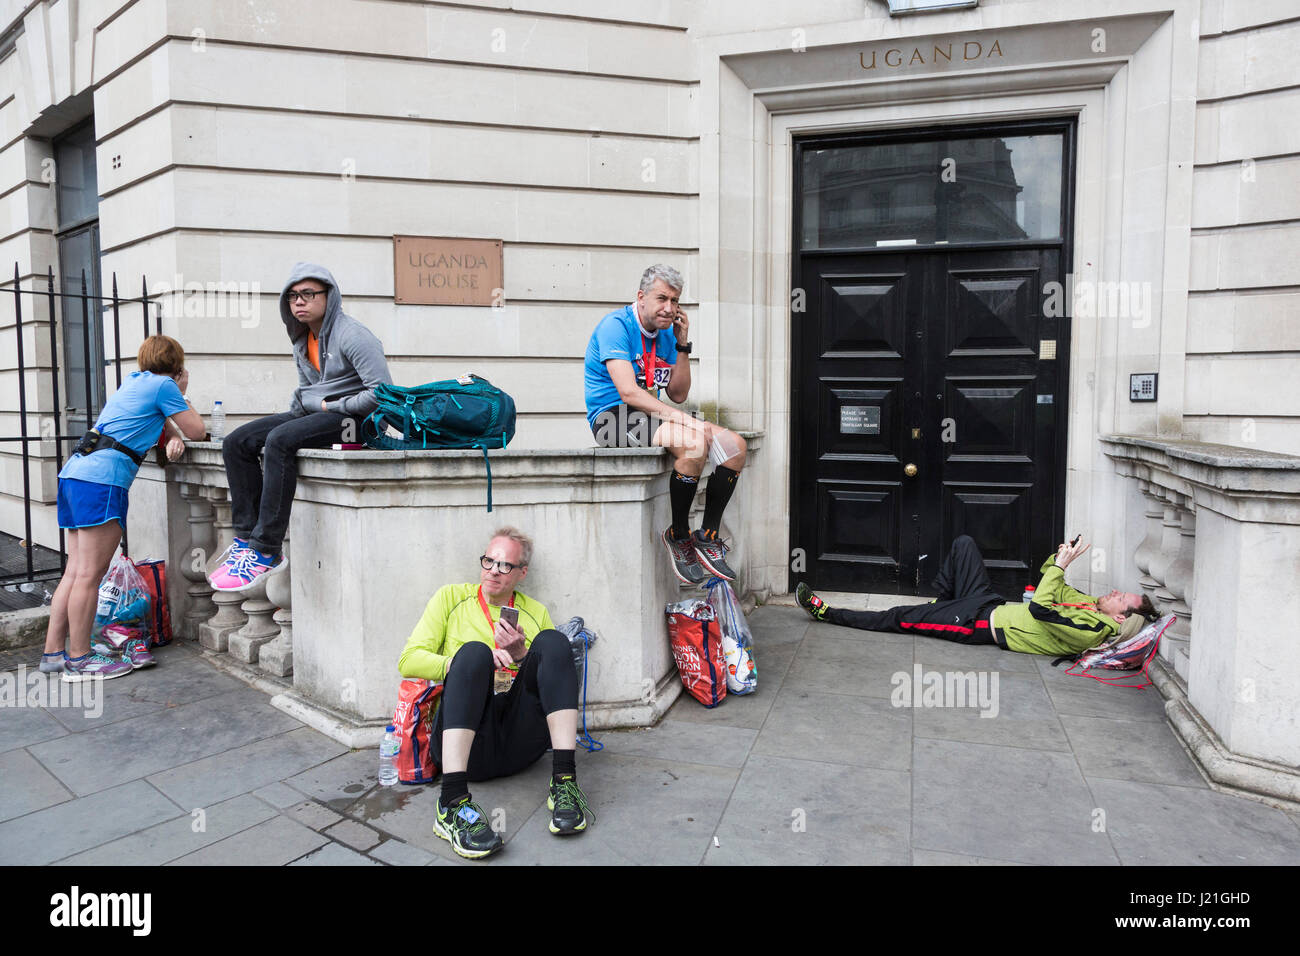 London, UK. 23rd Apr, 2017. Runners chill out after having successfully completed the 37th London Marathon. Credit: - Stock Image